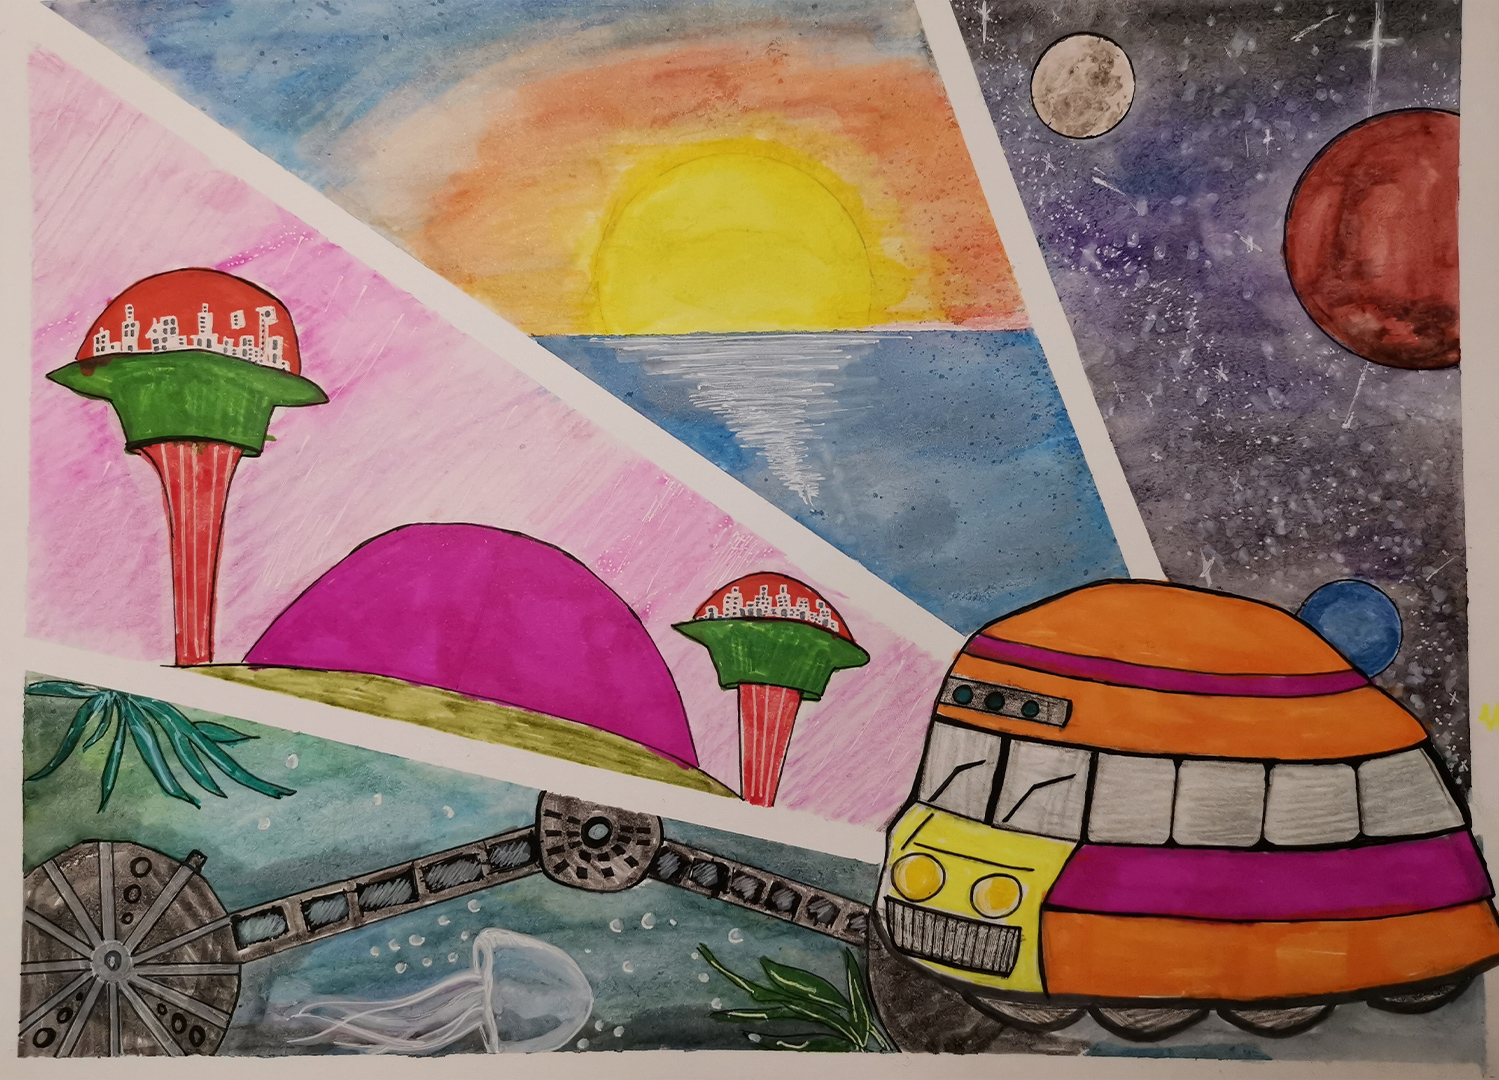 Magic School Bus, Maya Maksymenko, age 5